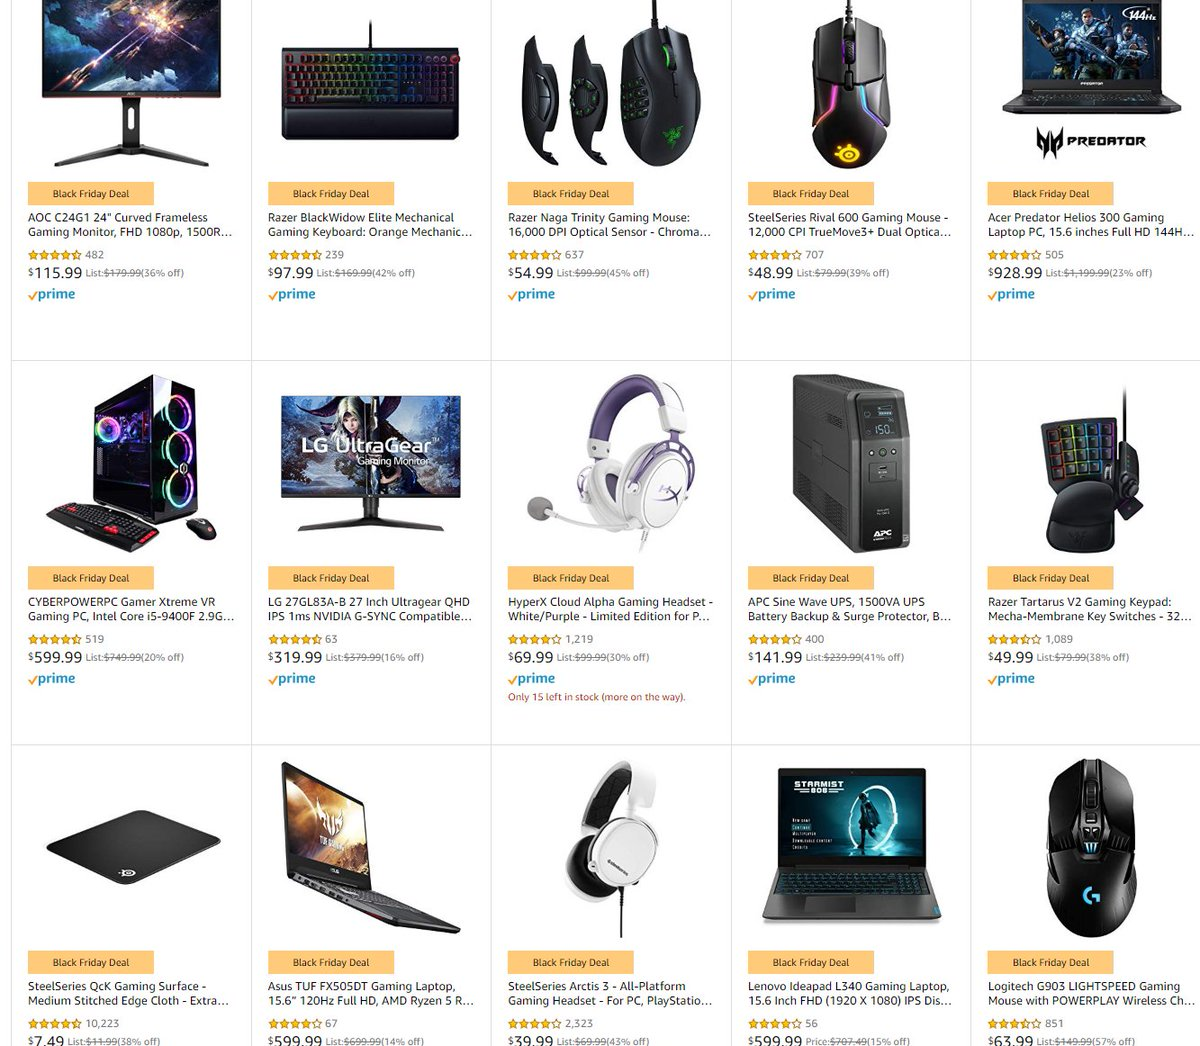 Wario64 Auf Twitter Pc Gaming Laptops Desktops Monitors Components And Accessories Sale On Amazon Https T Co Pkujiznp3f